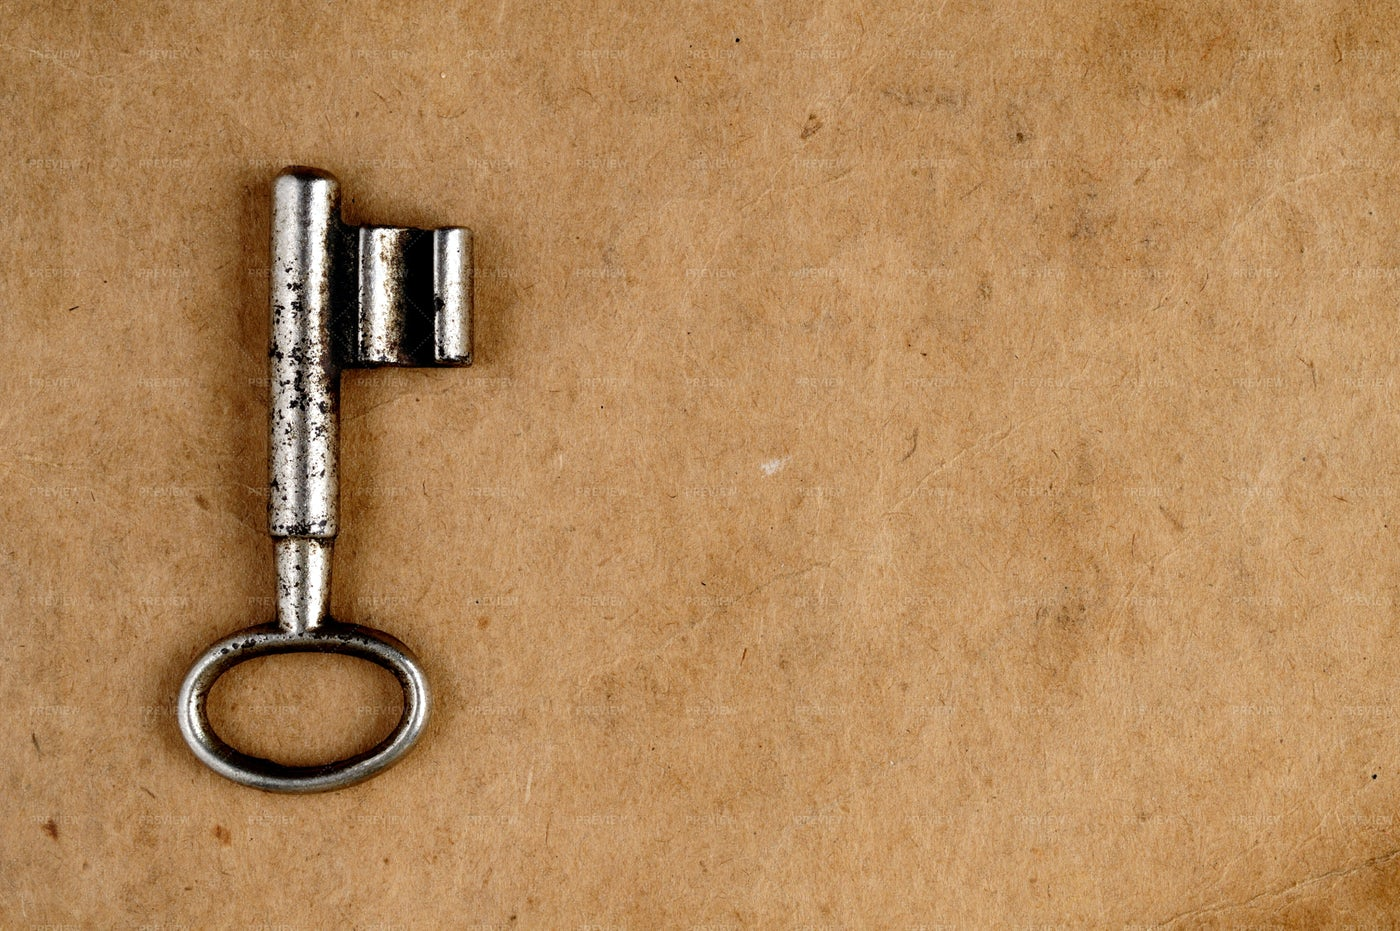 Vintage Key On Old Paper Background: Stock Photos